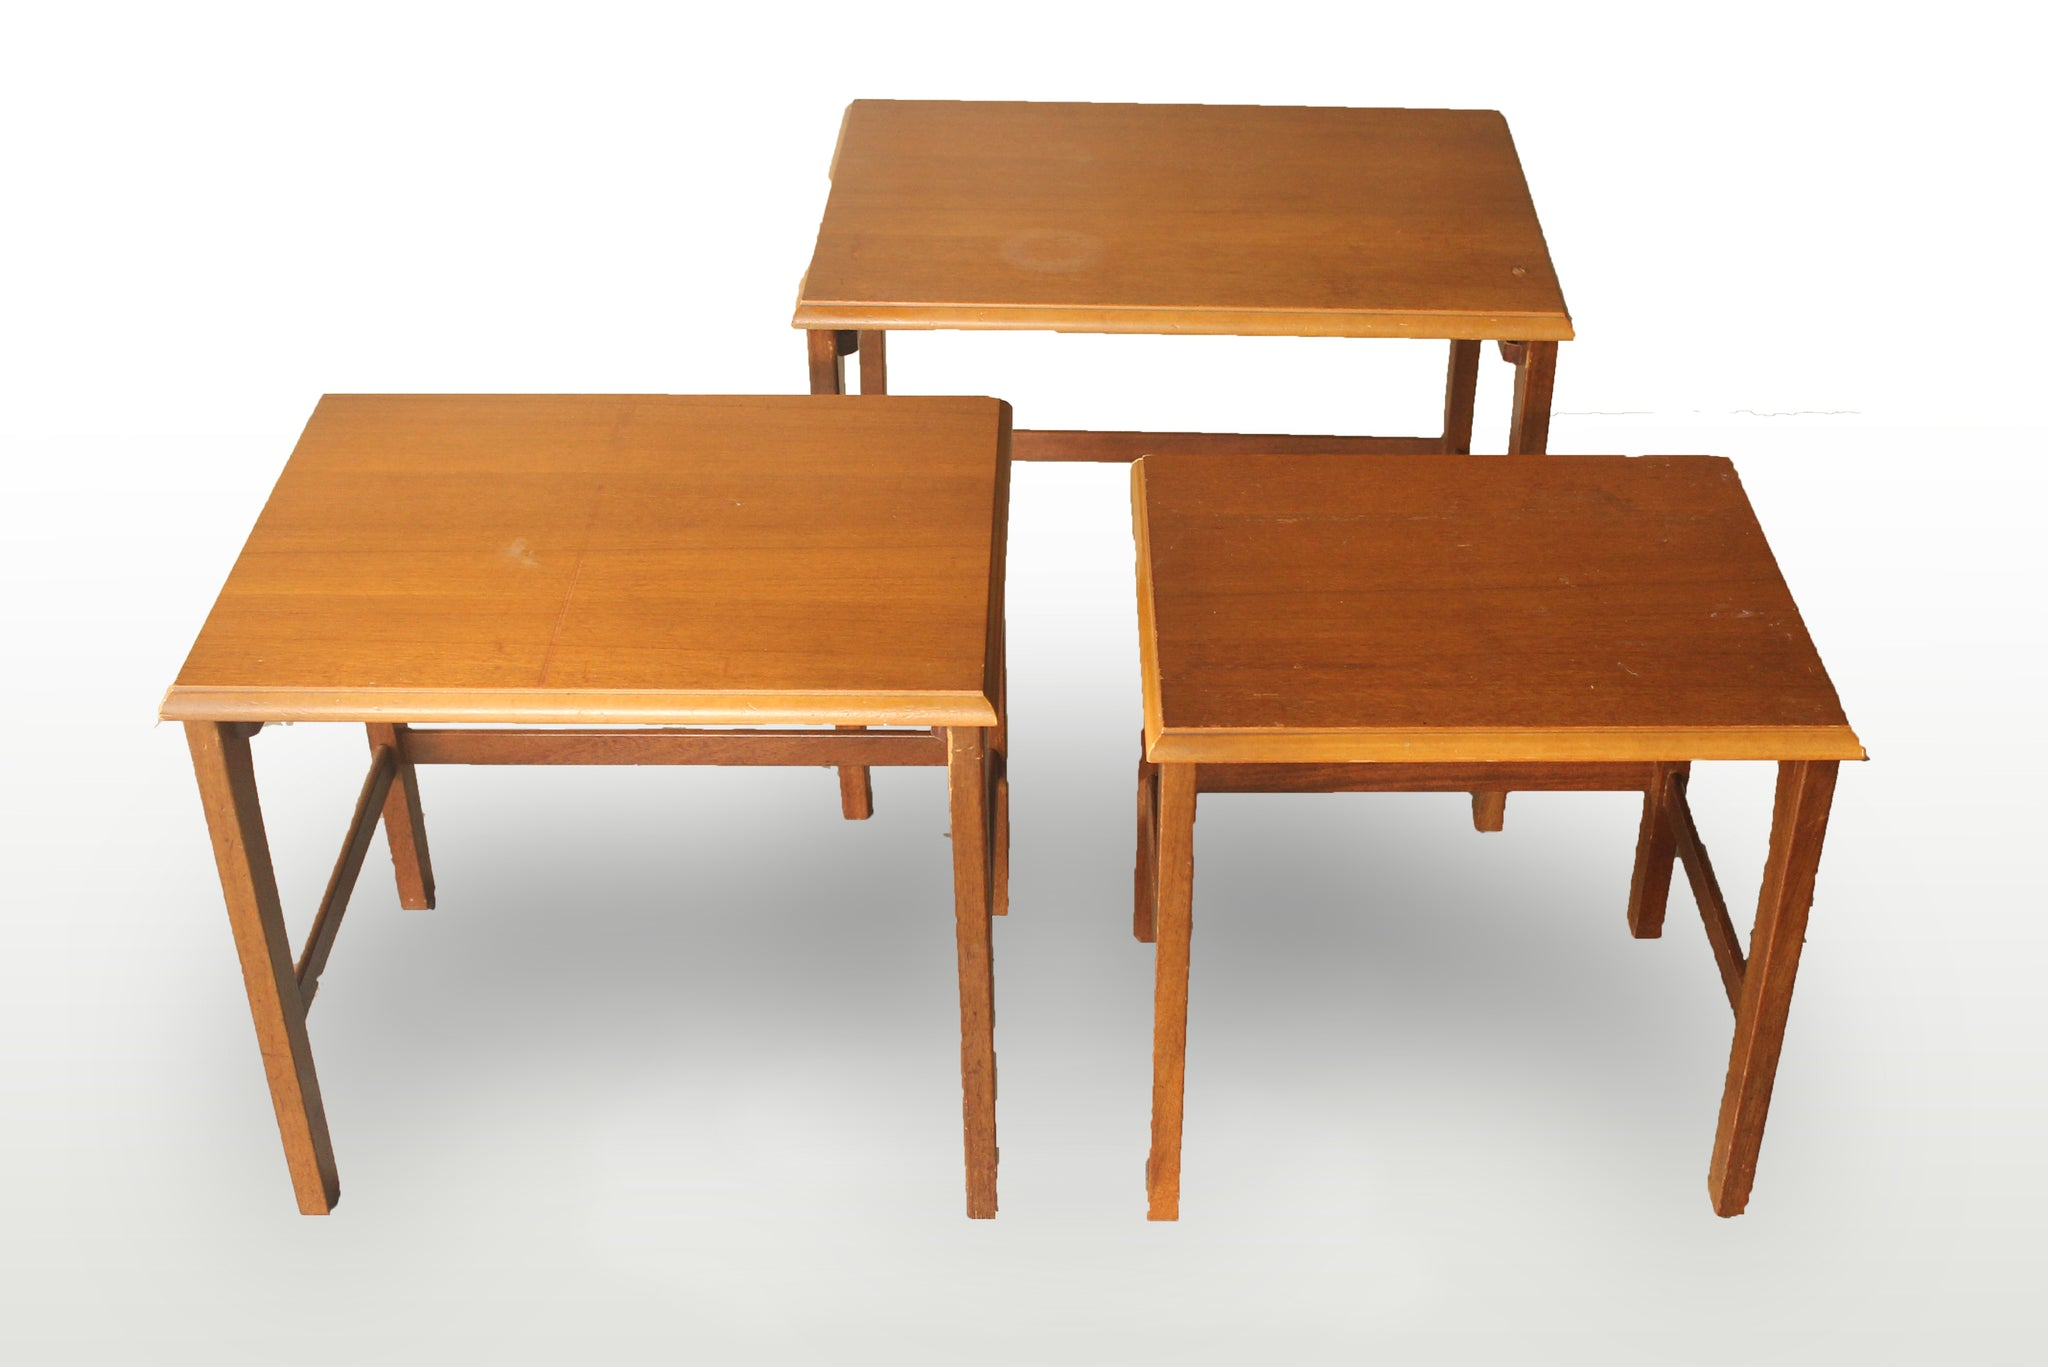 Nest of 3 table - Repro Furniture